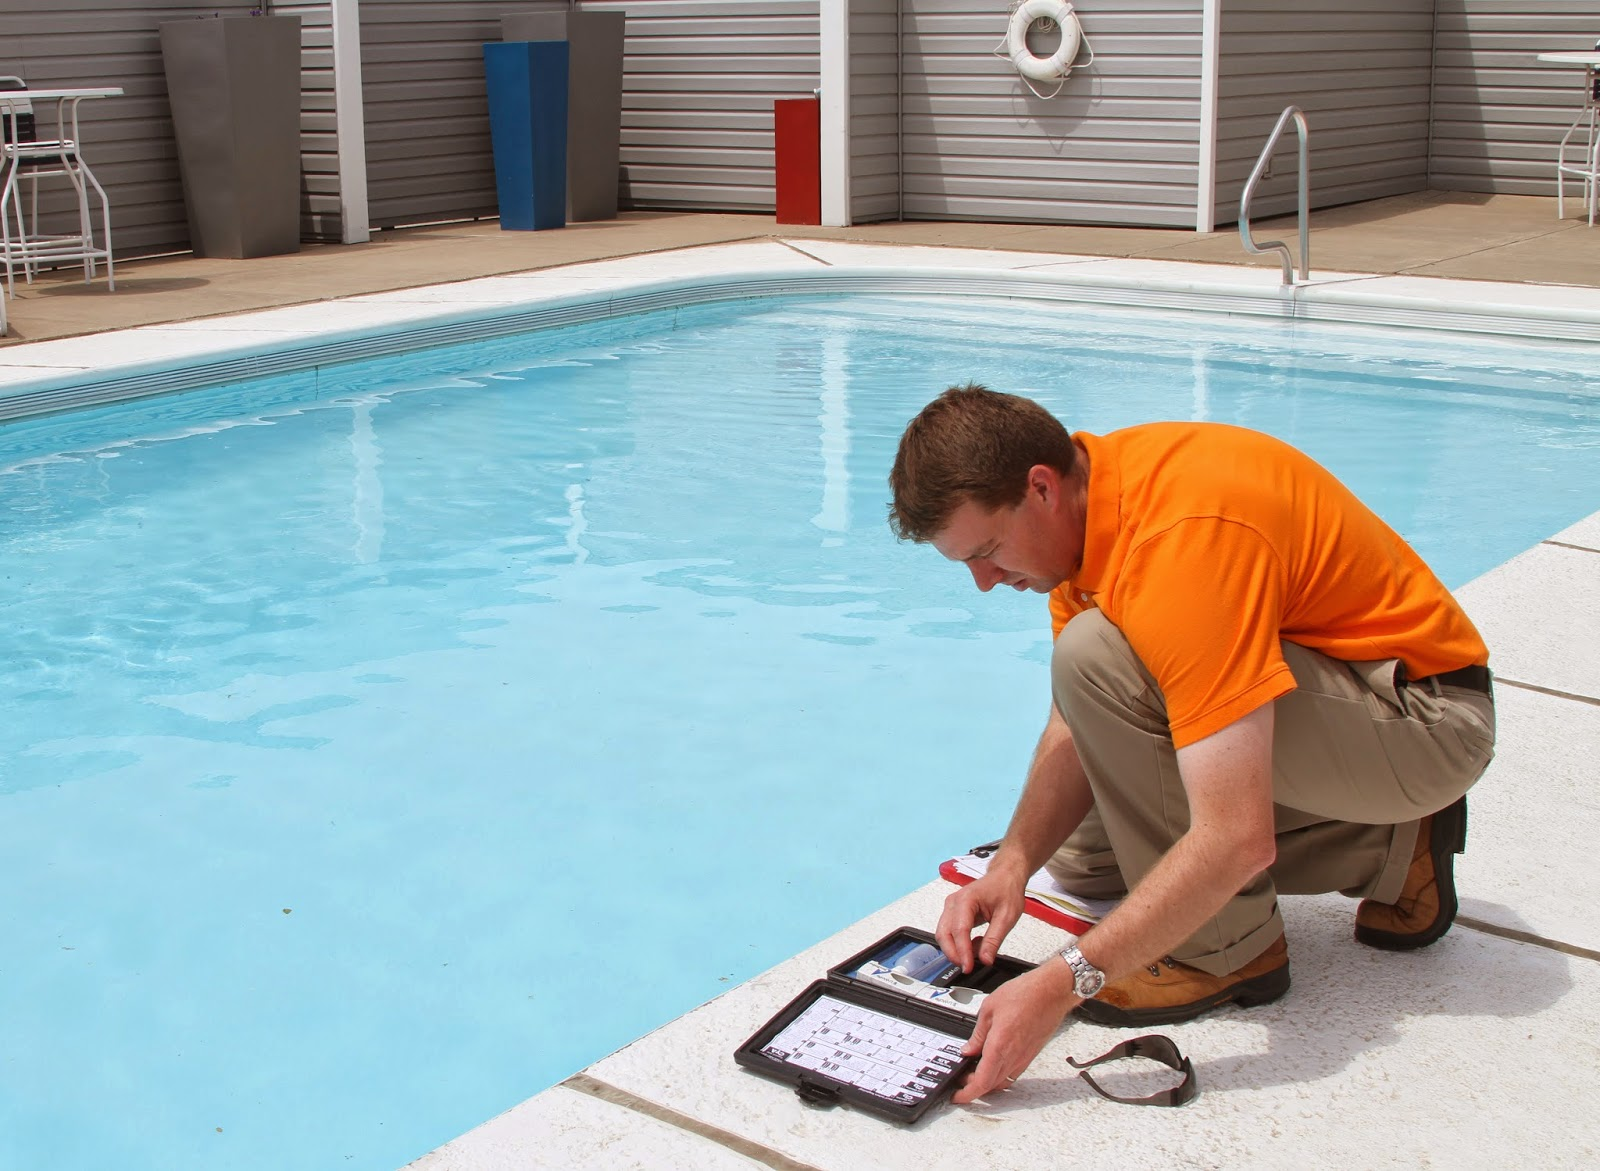 Recreational Water Illnesses In Public Pools General Swimming Pool Information